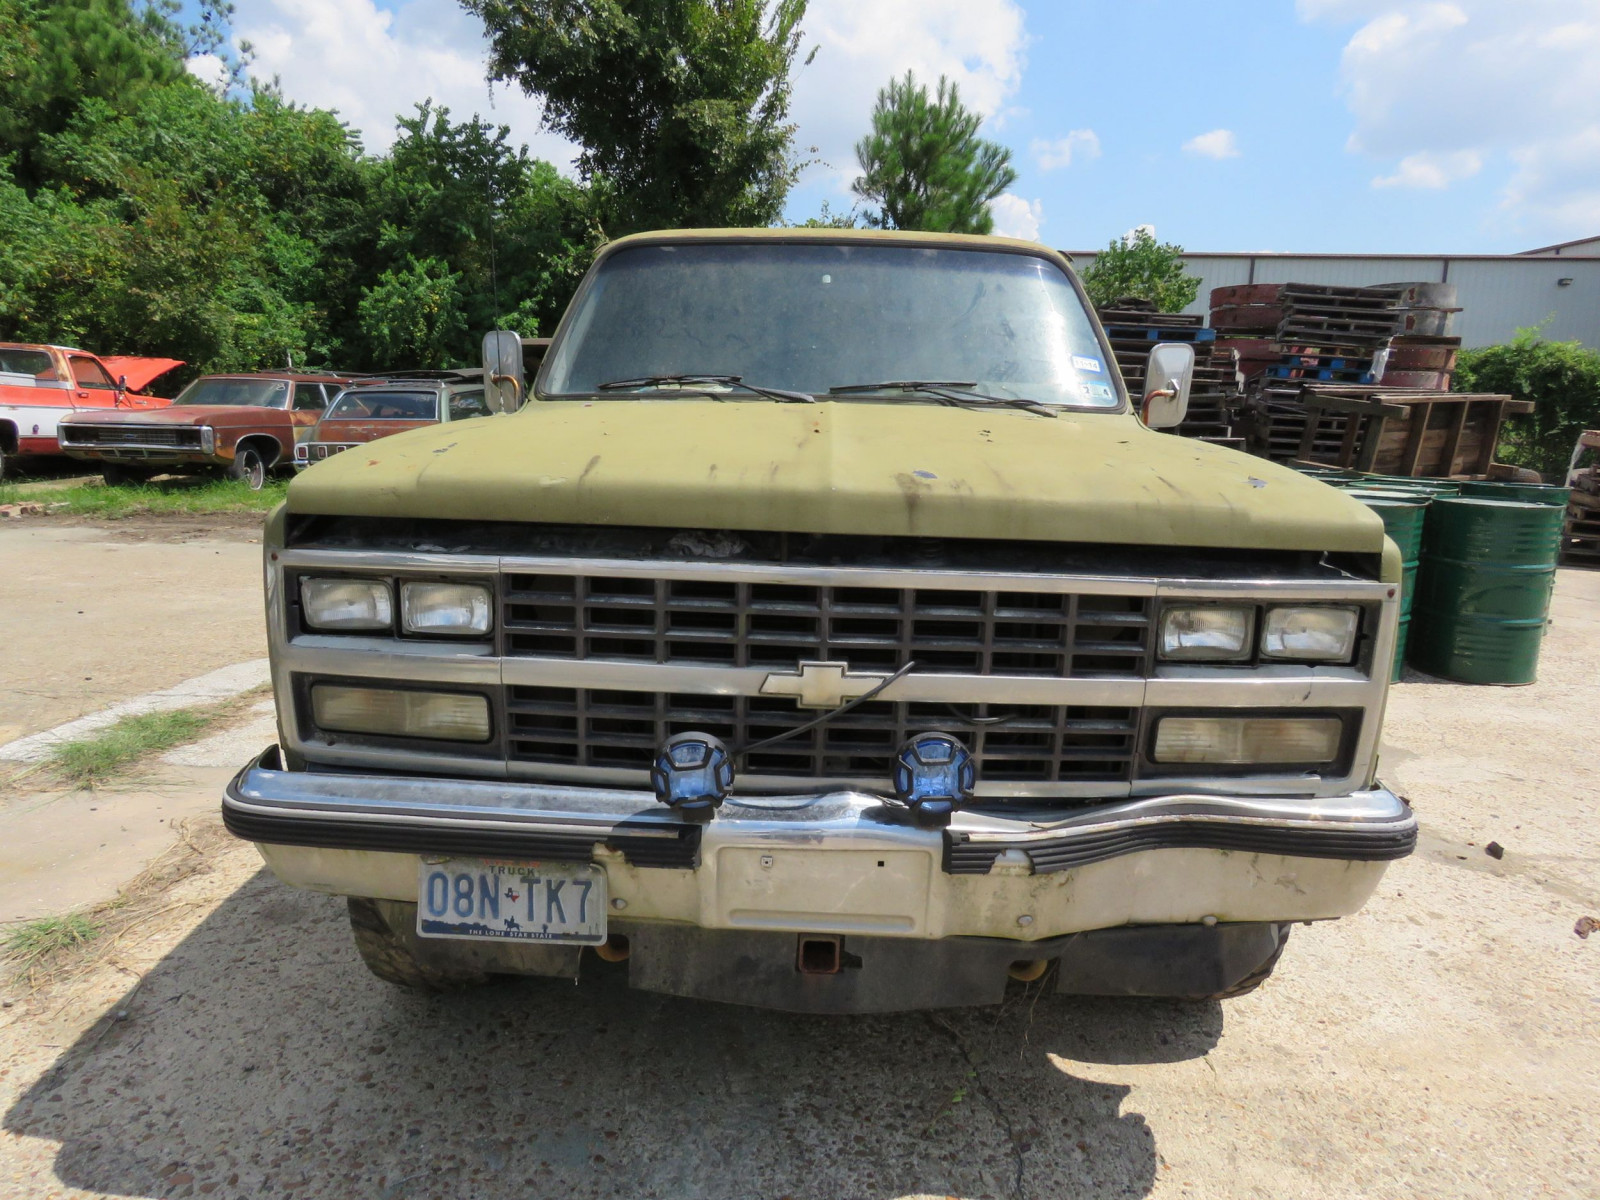 1990 Chevrolet Suburban 4x4 Project - Image 2